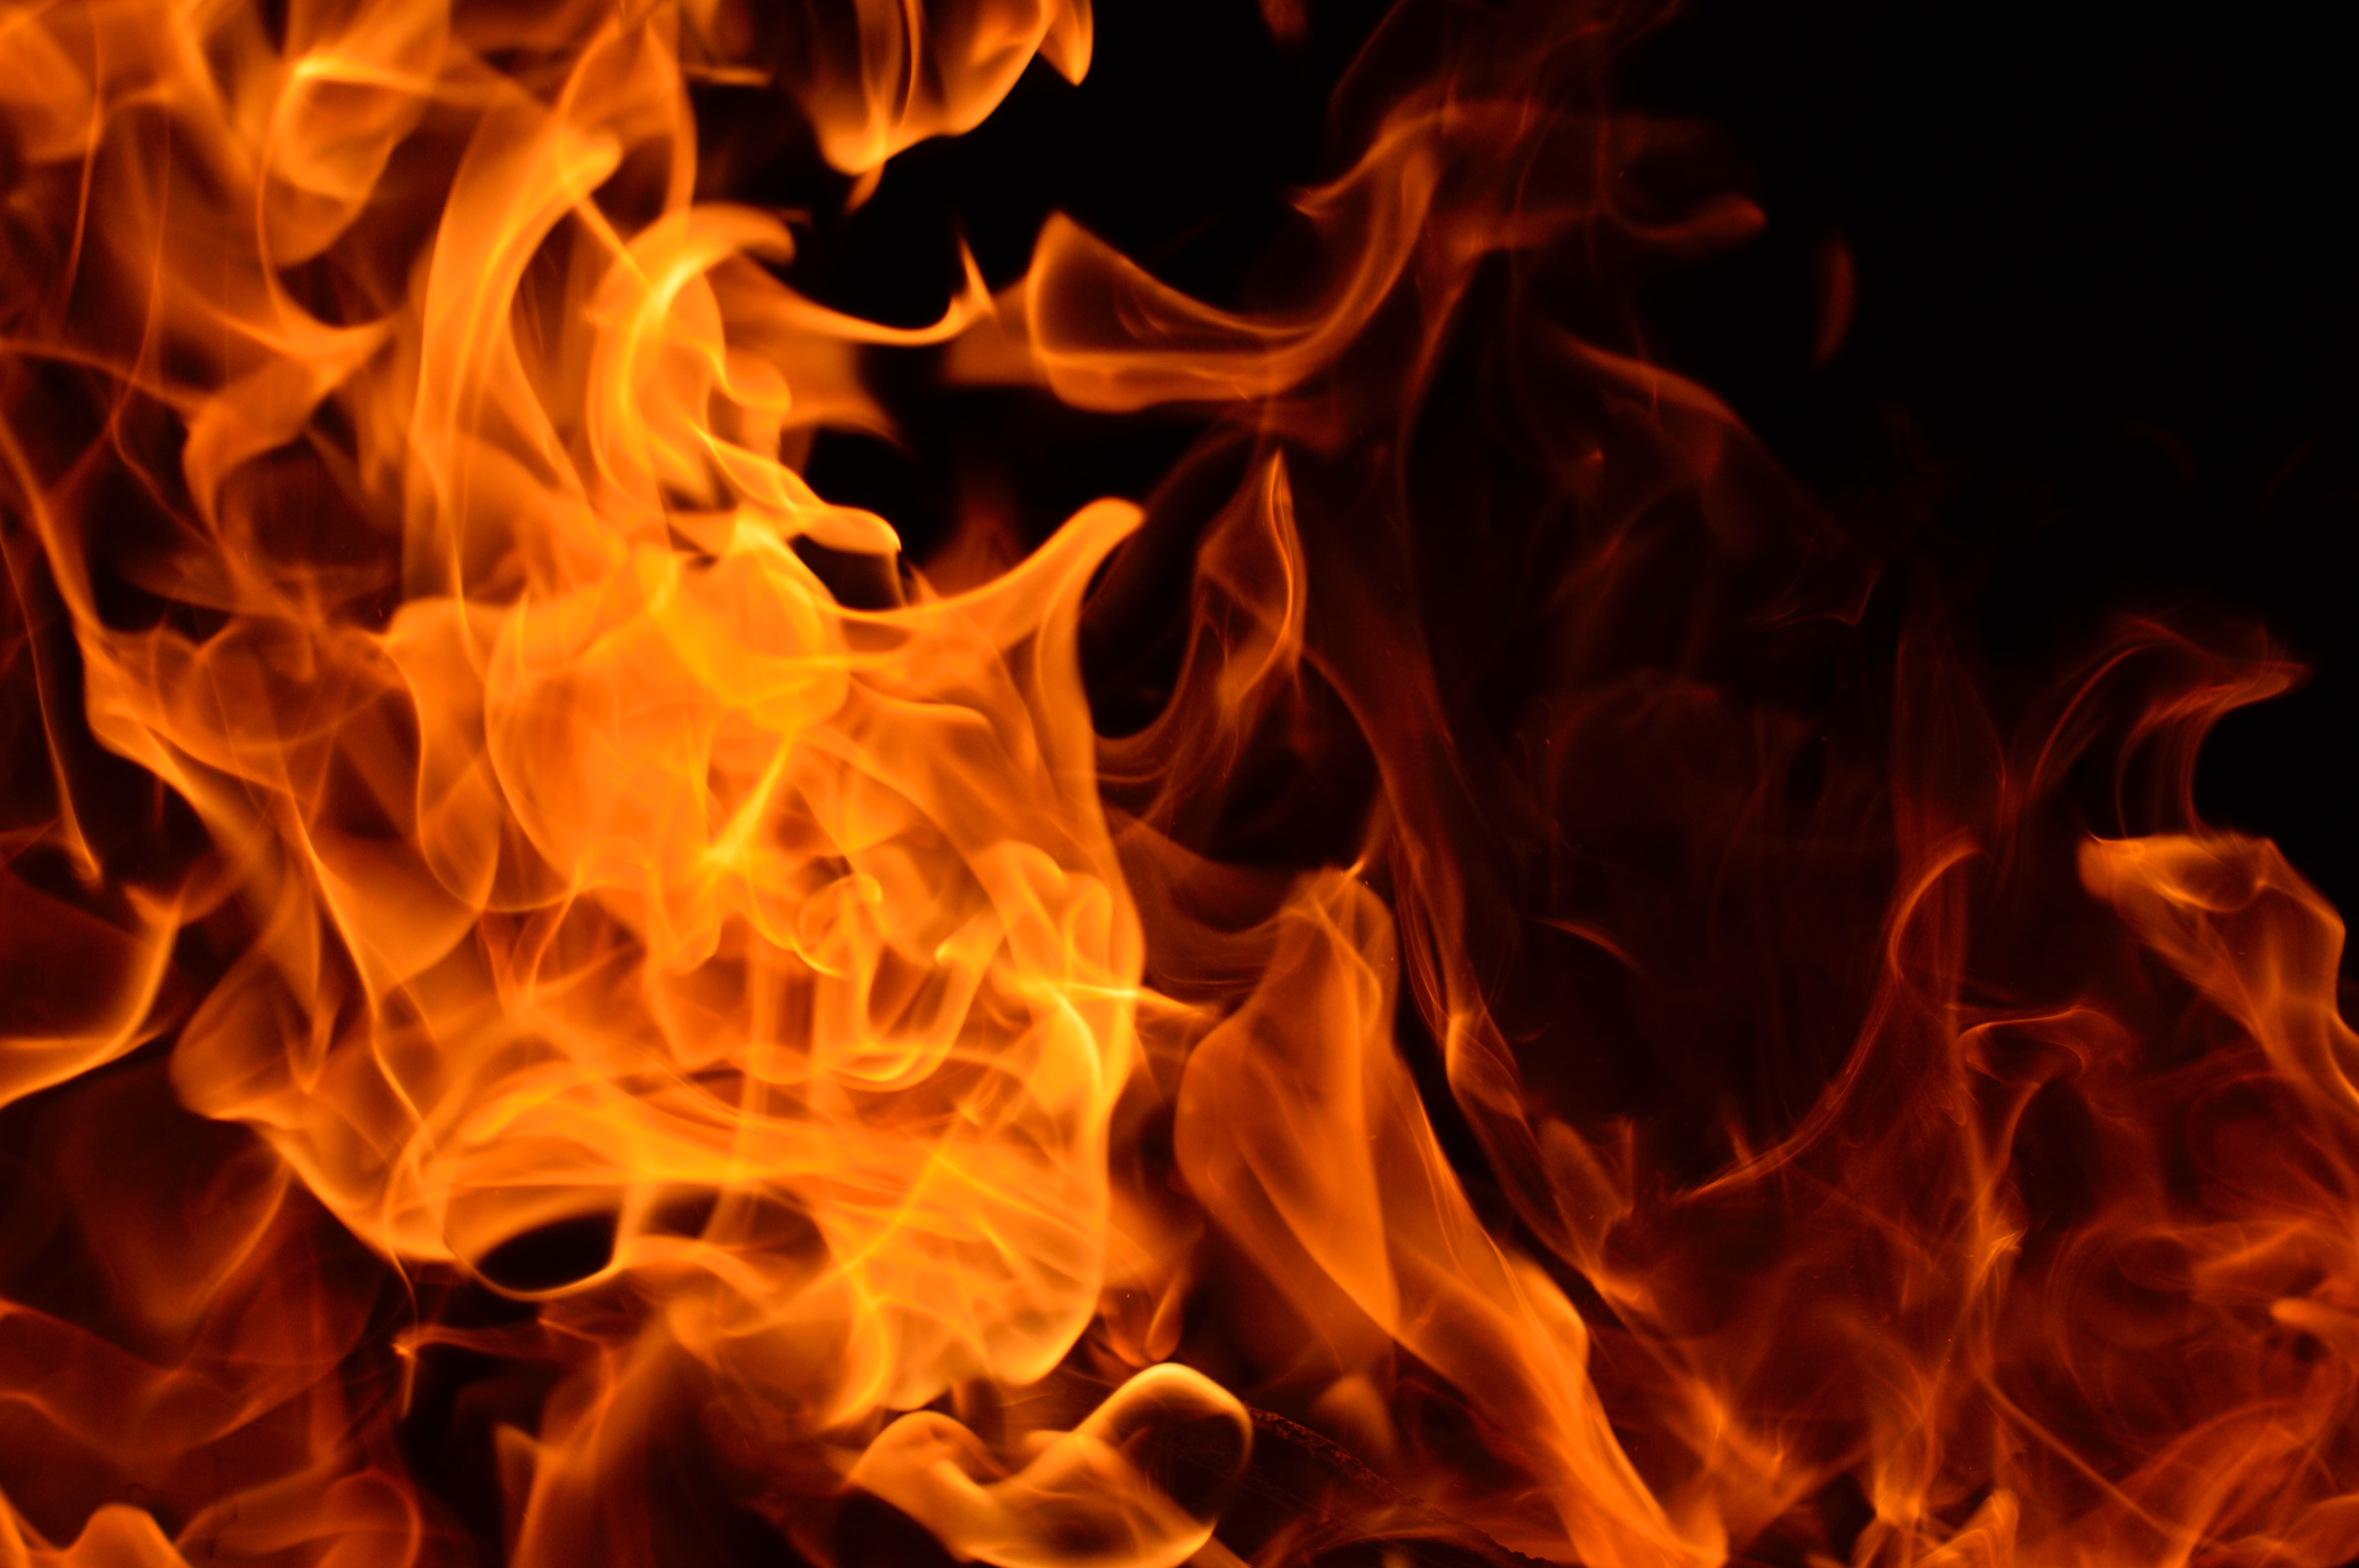 Best Iphone 4 Wallpapers Hd Free Stock Photo Of Beautiful Fire Flame